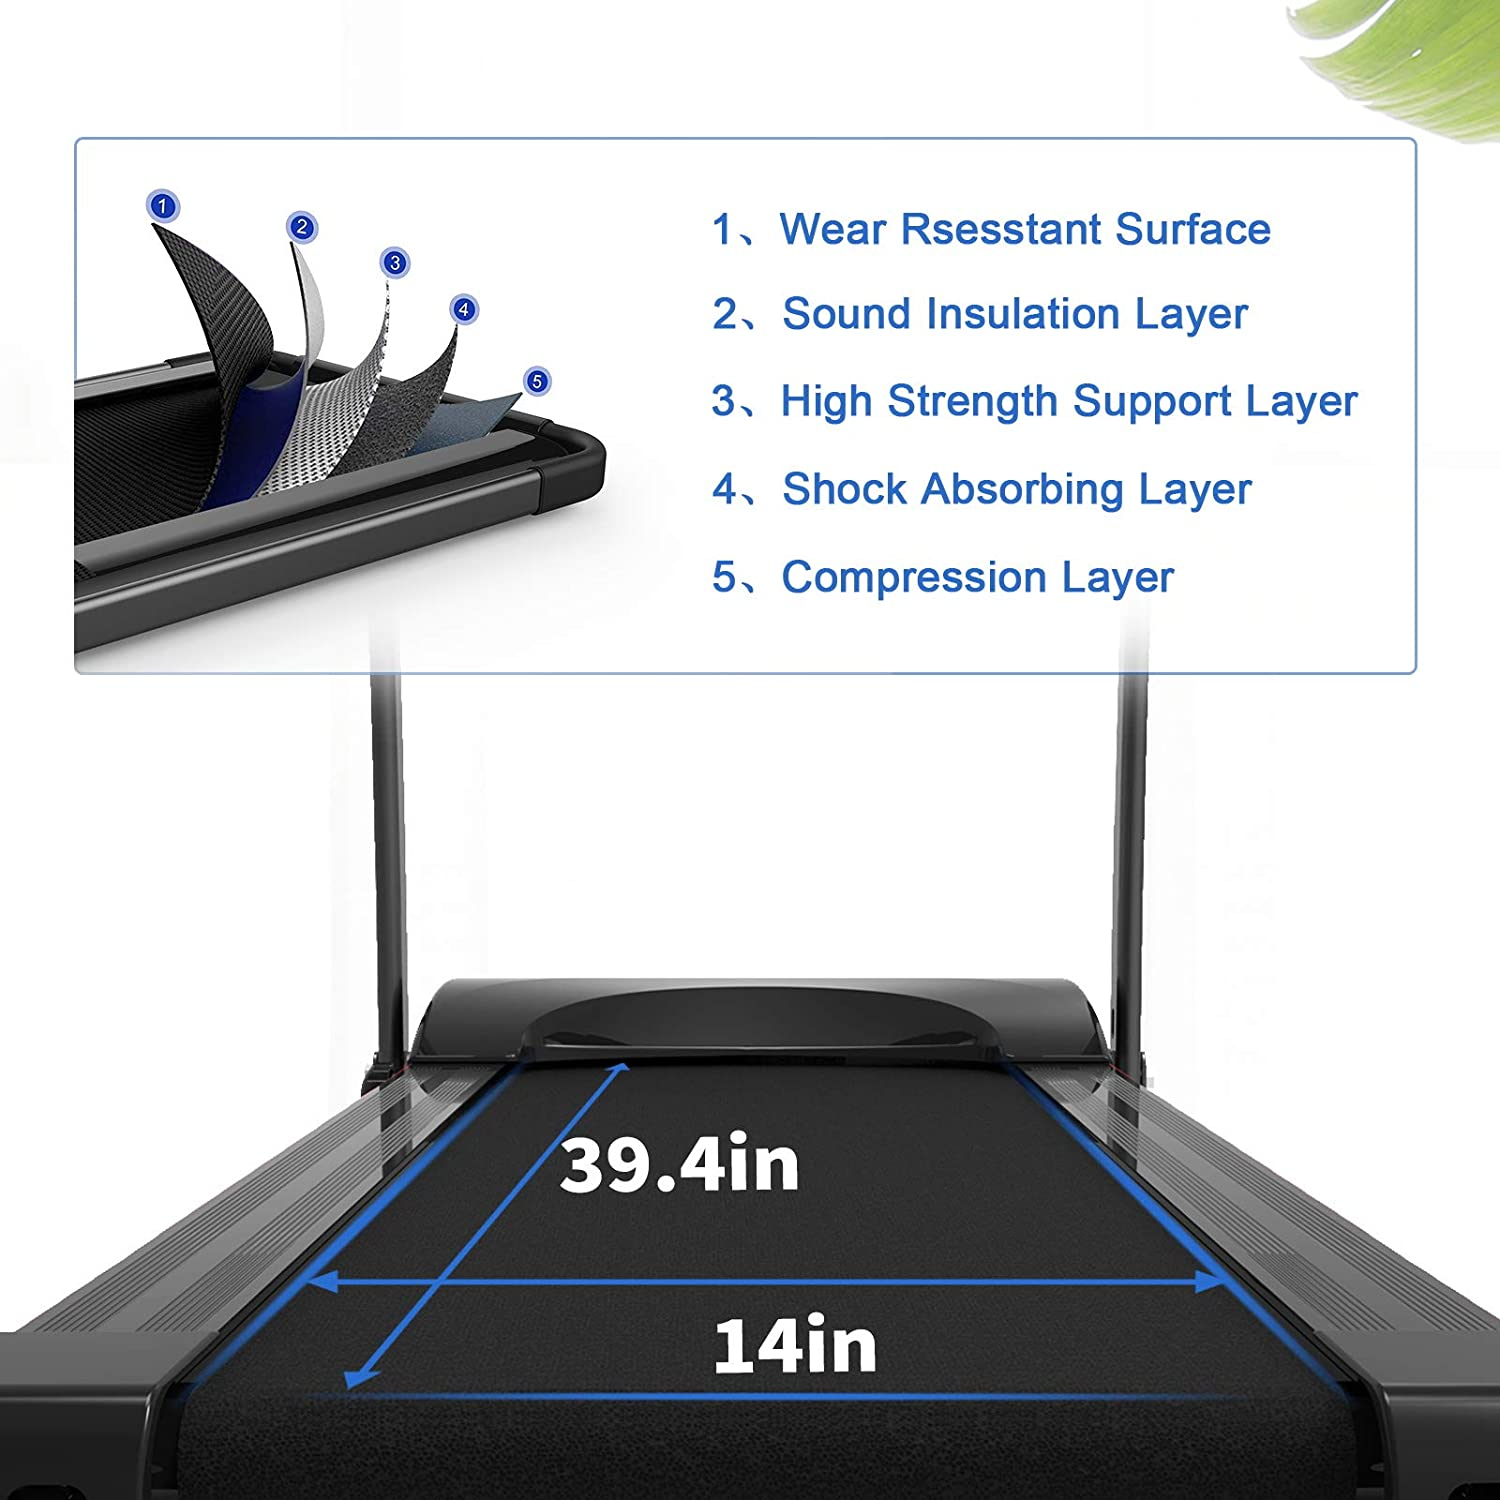 Folding Treadmills for Home Portable Electric Treadmill Running Exercise Machine Compact Treadmill Foldable with LCD Display and Mobile Phone Holder Perfect for Home Fitness Workout Jogging Walking